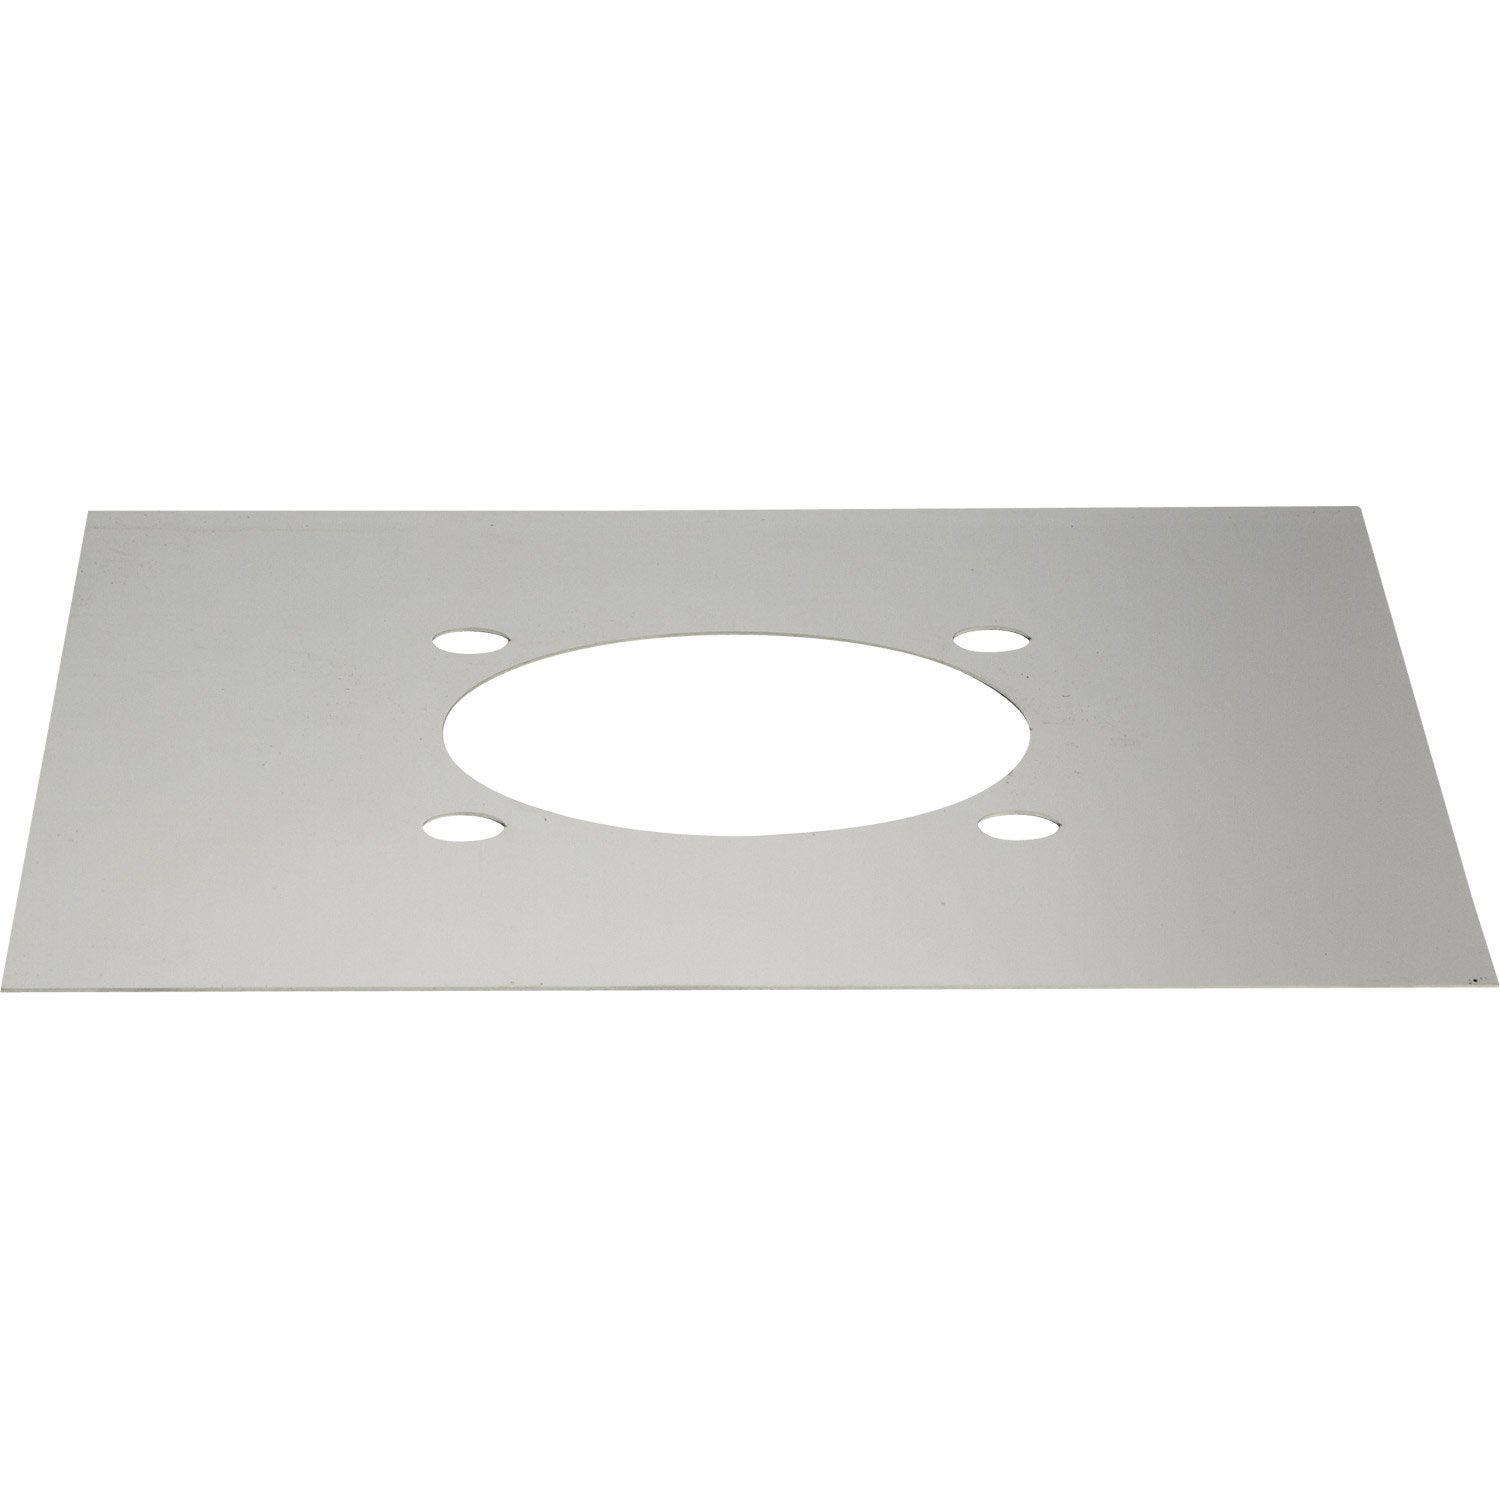 Plaque inox leroy merlin dcoration plaque d aluminium for Plaque de cuisson leroy merlin